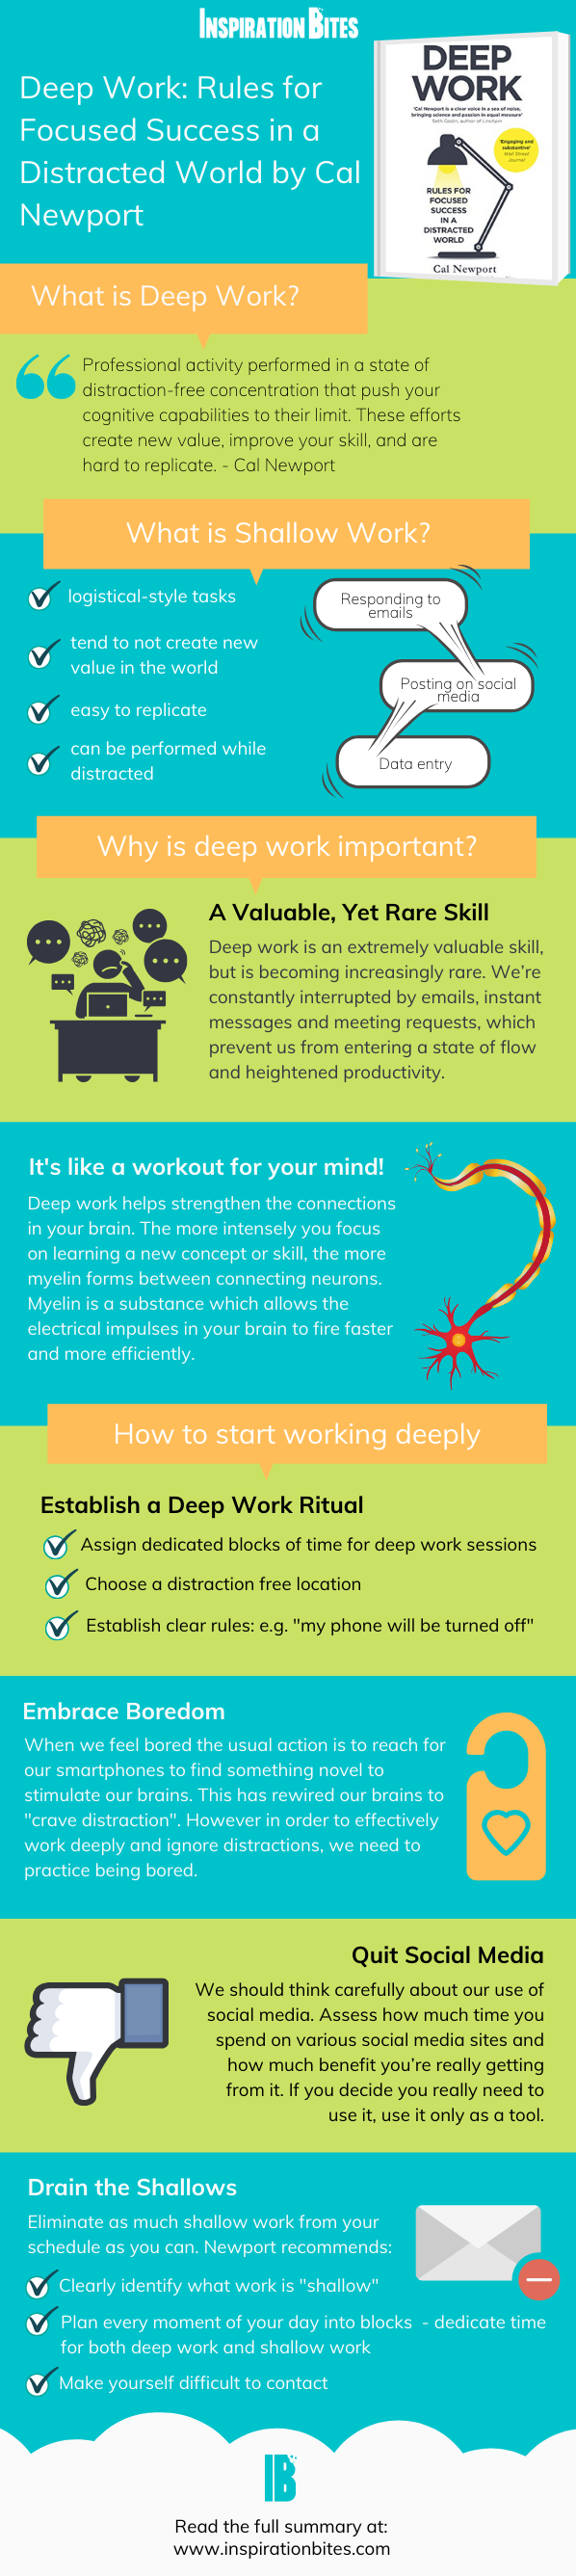 Deep Work Summary: How to Focus in a Distracted World #infographic